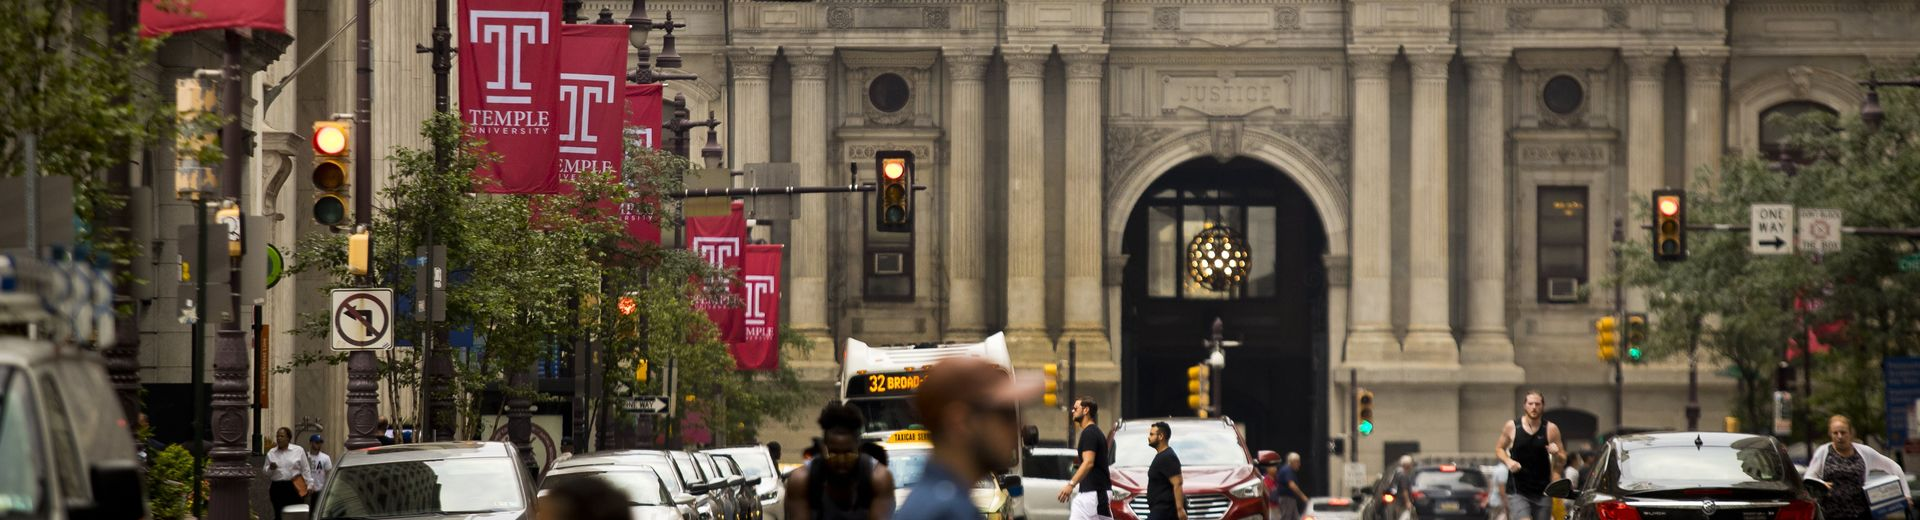 Temple University banners hang from street lamps, with Philadelphia's City Hall in the background.